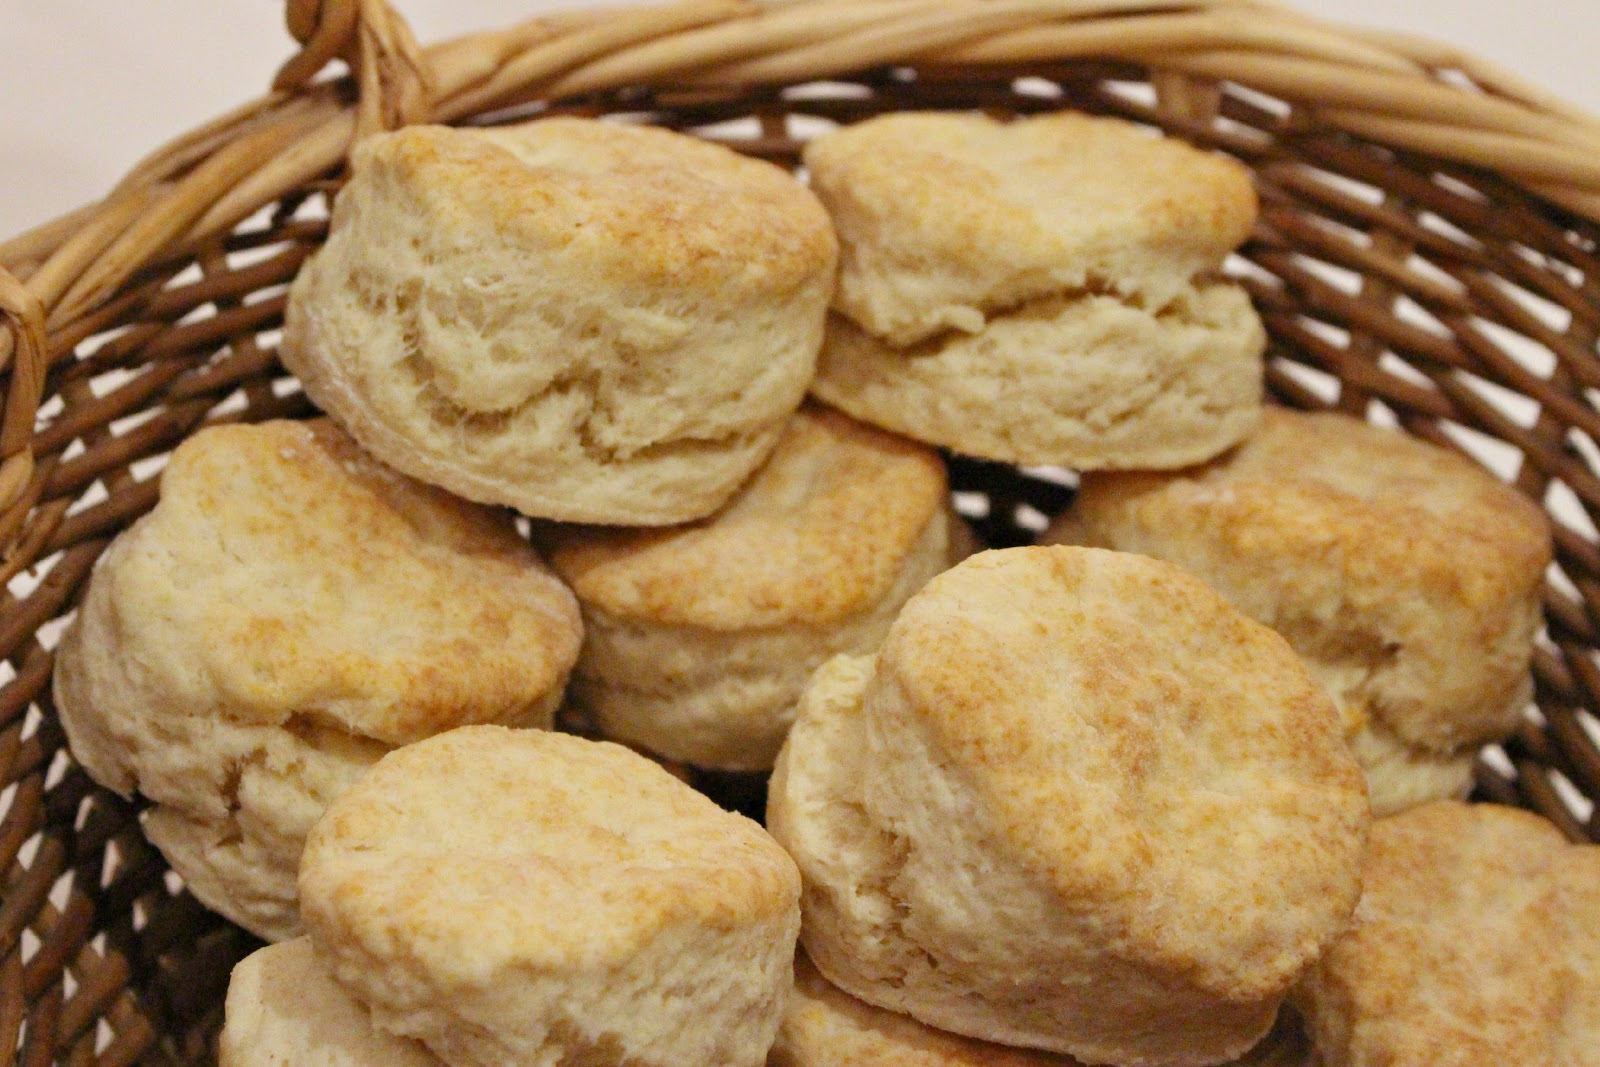 Jenn's Random Scraps: Almost Spring, and Sour Cream Biscuits